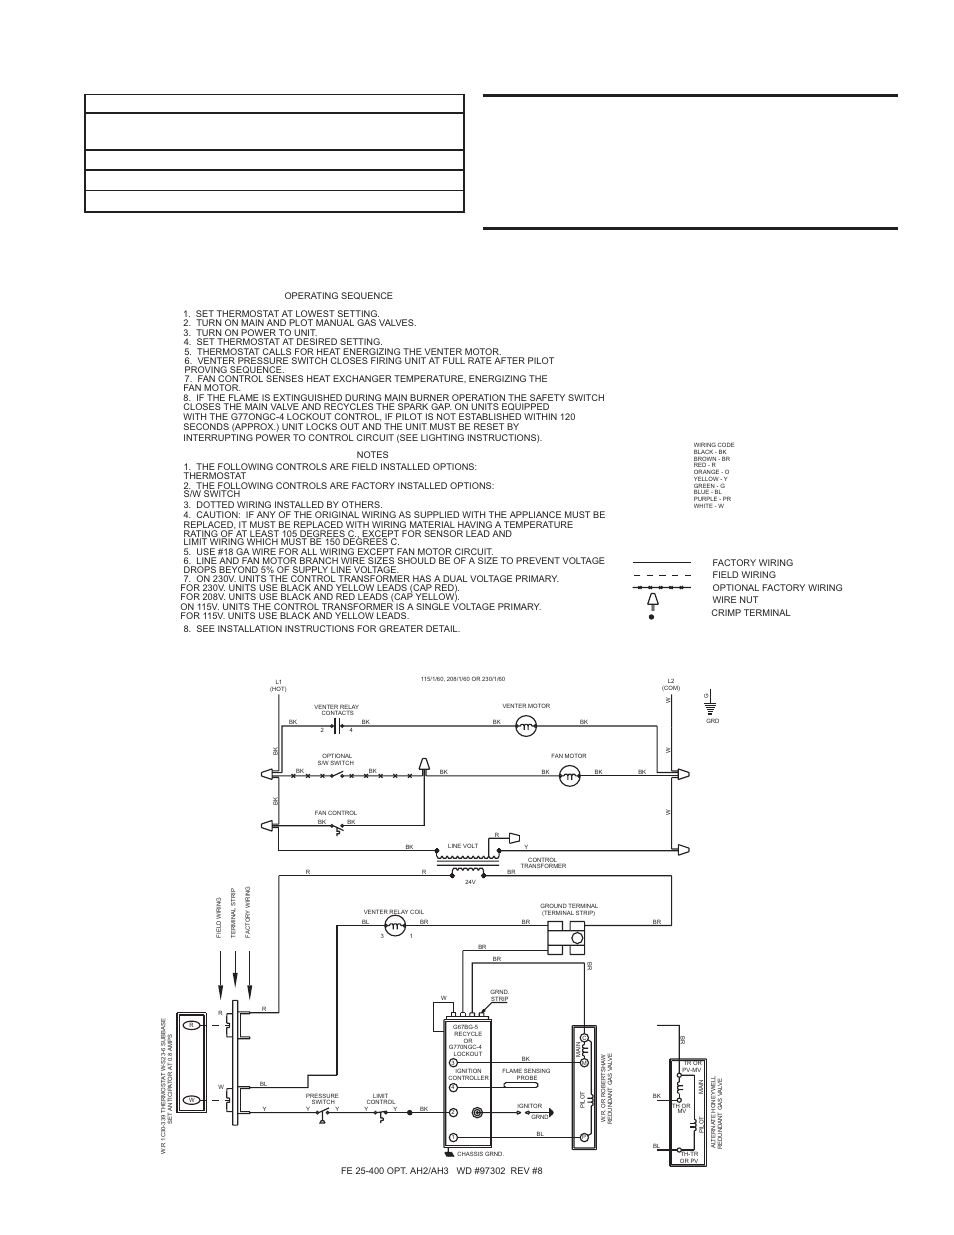 medium resolution of reznor wiring schematic wire management wiring diagram reznor wiring schematic